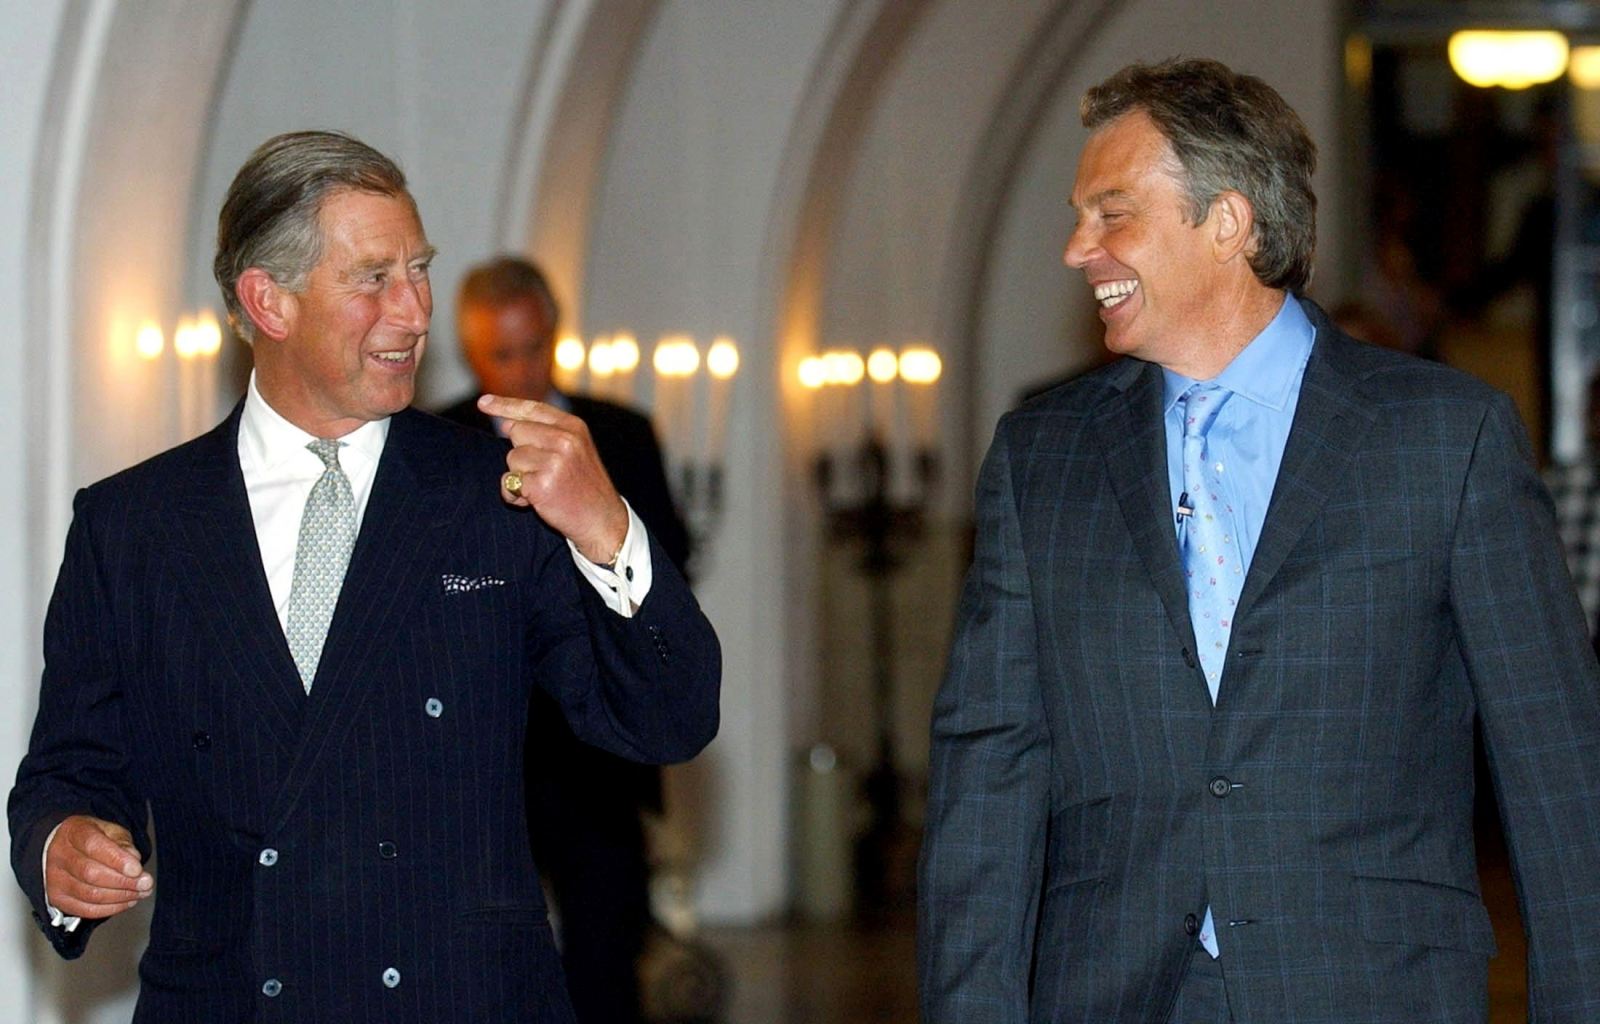 Prince Charles and Tony Blair